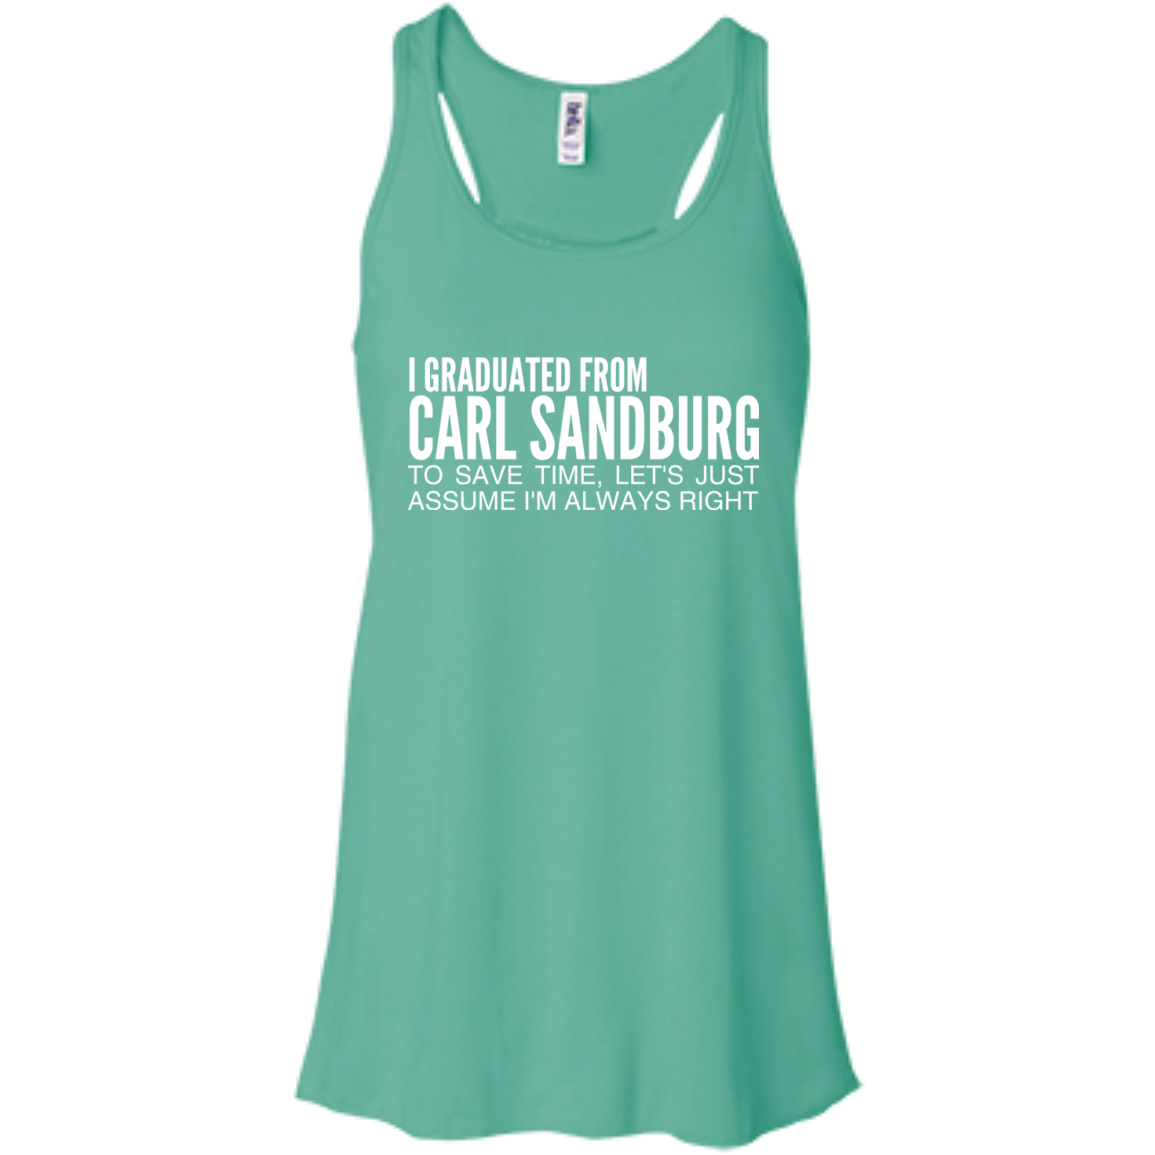 I Graduated From Carl Sandburg To Save Time Lets Just Assume Im Always Right Flowy Racerback Tanks